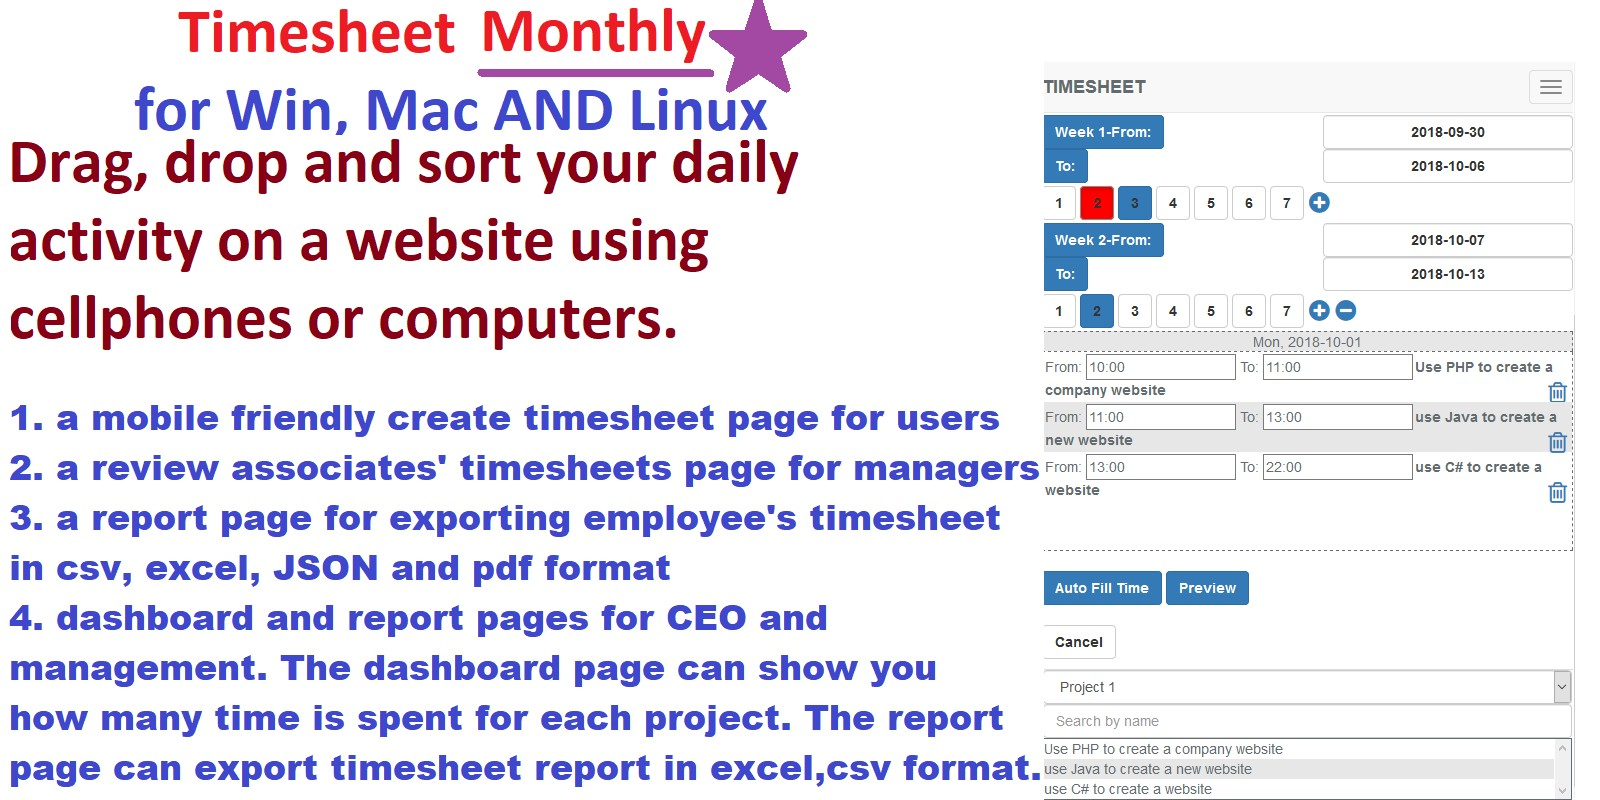 Monthly Timesheet PHP Script